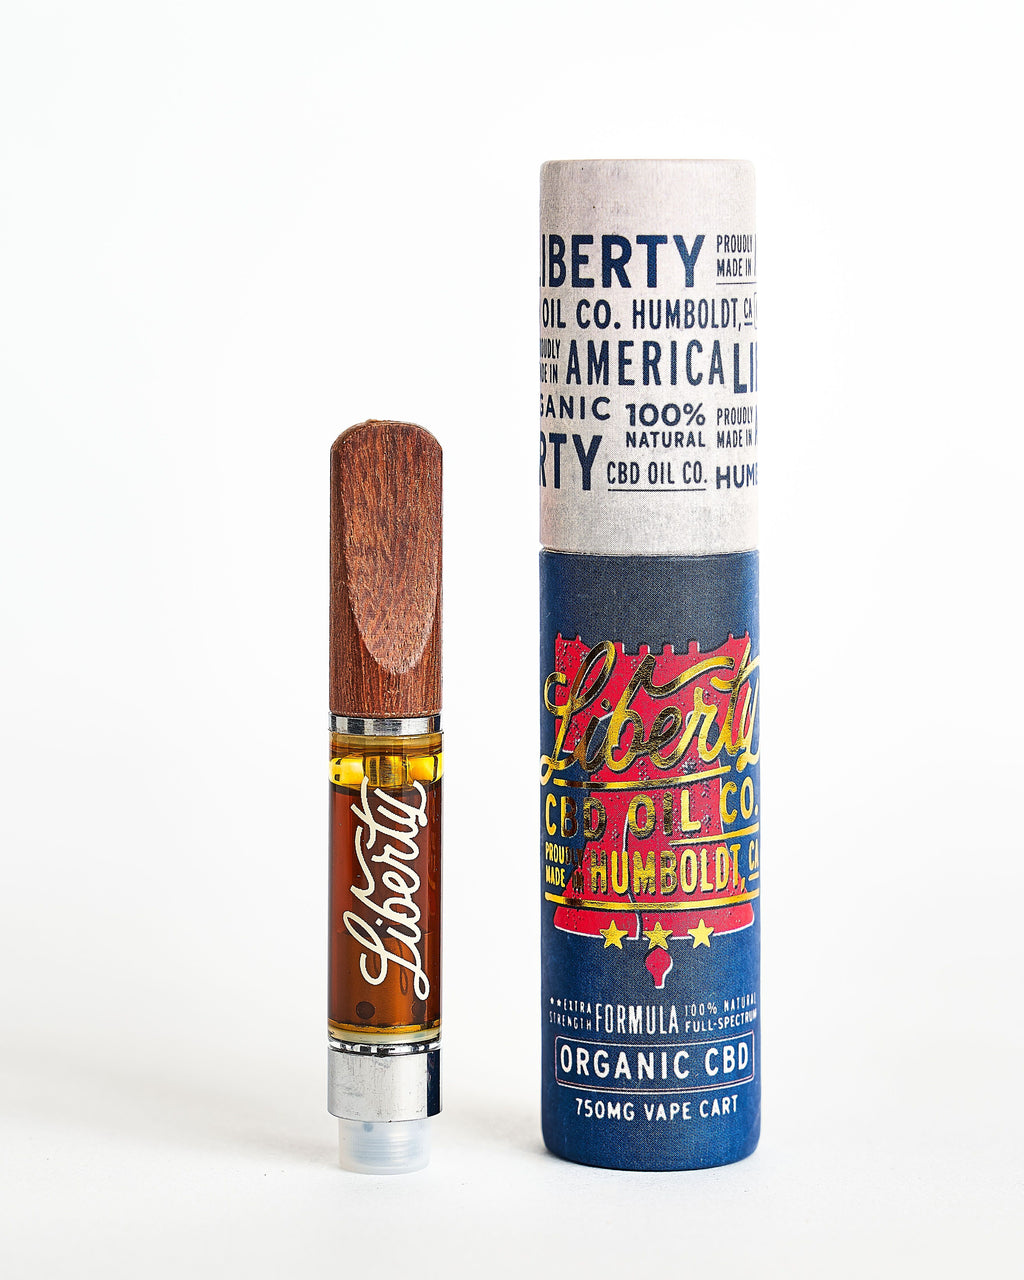 high-quality full-spectrum vape carts are made with a pure organic CBD distillate